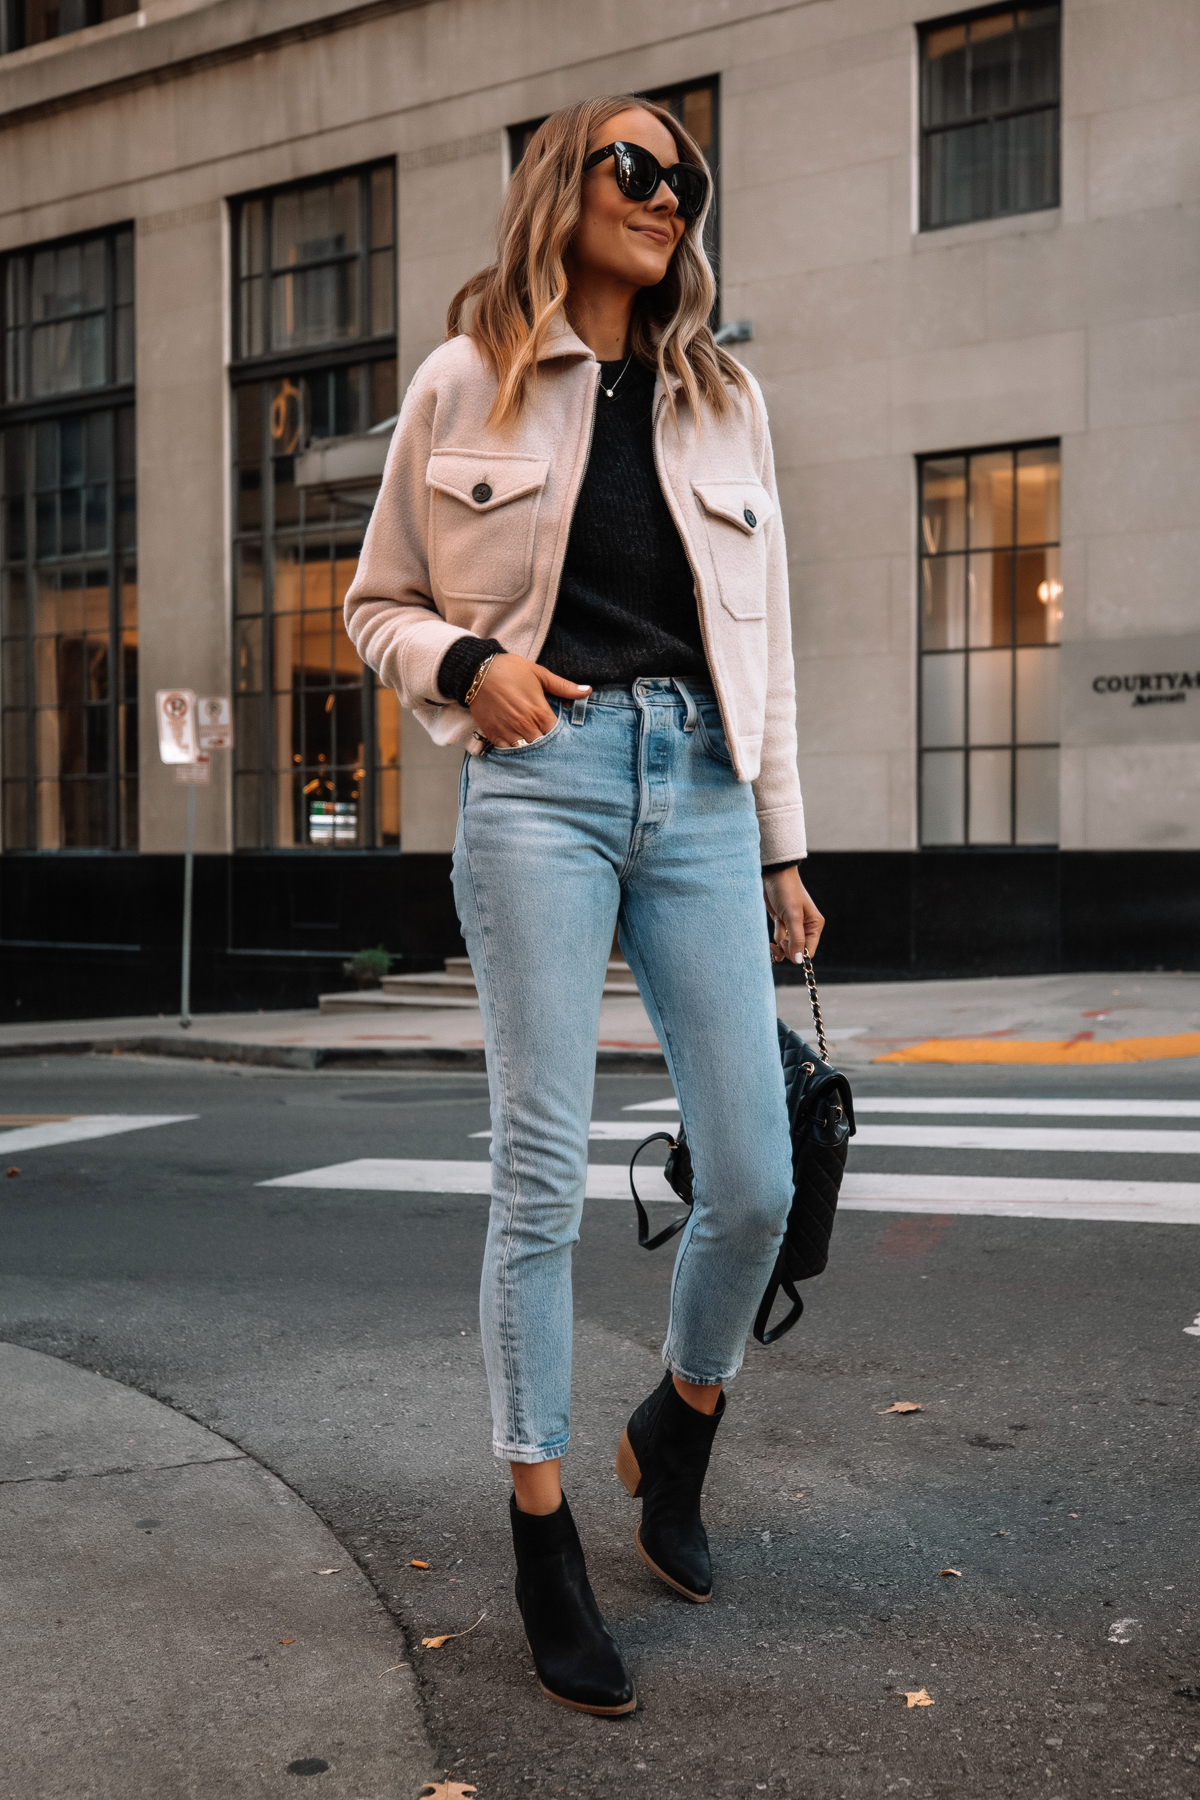 Fashion Jackson Wearing Everlane Mackinaw Jacket Black Sweater Jeans Black Booties Street Style Outfit